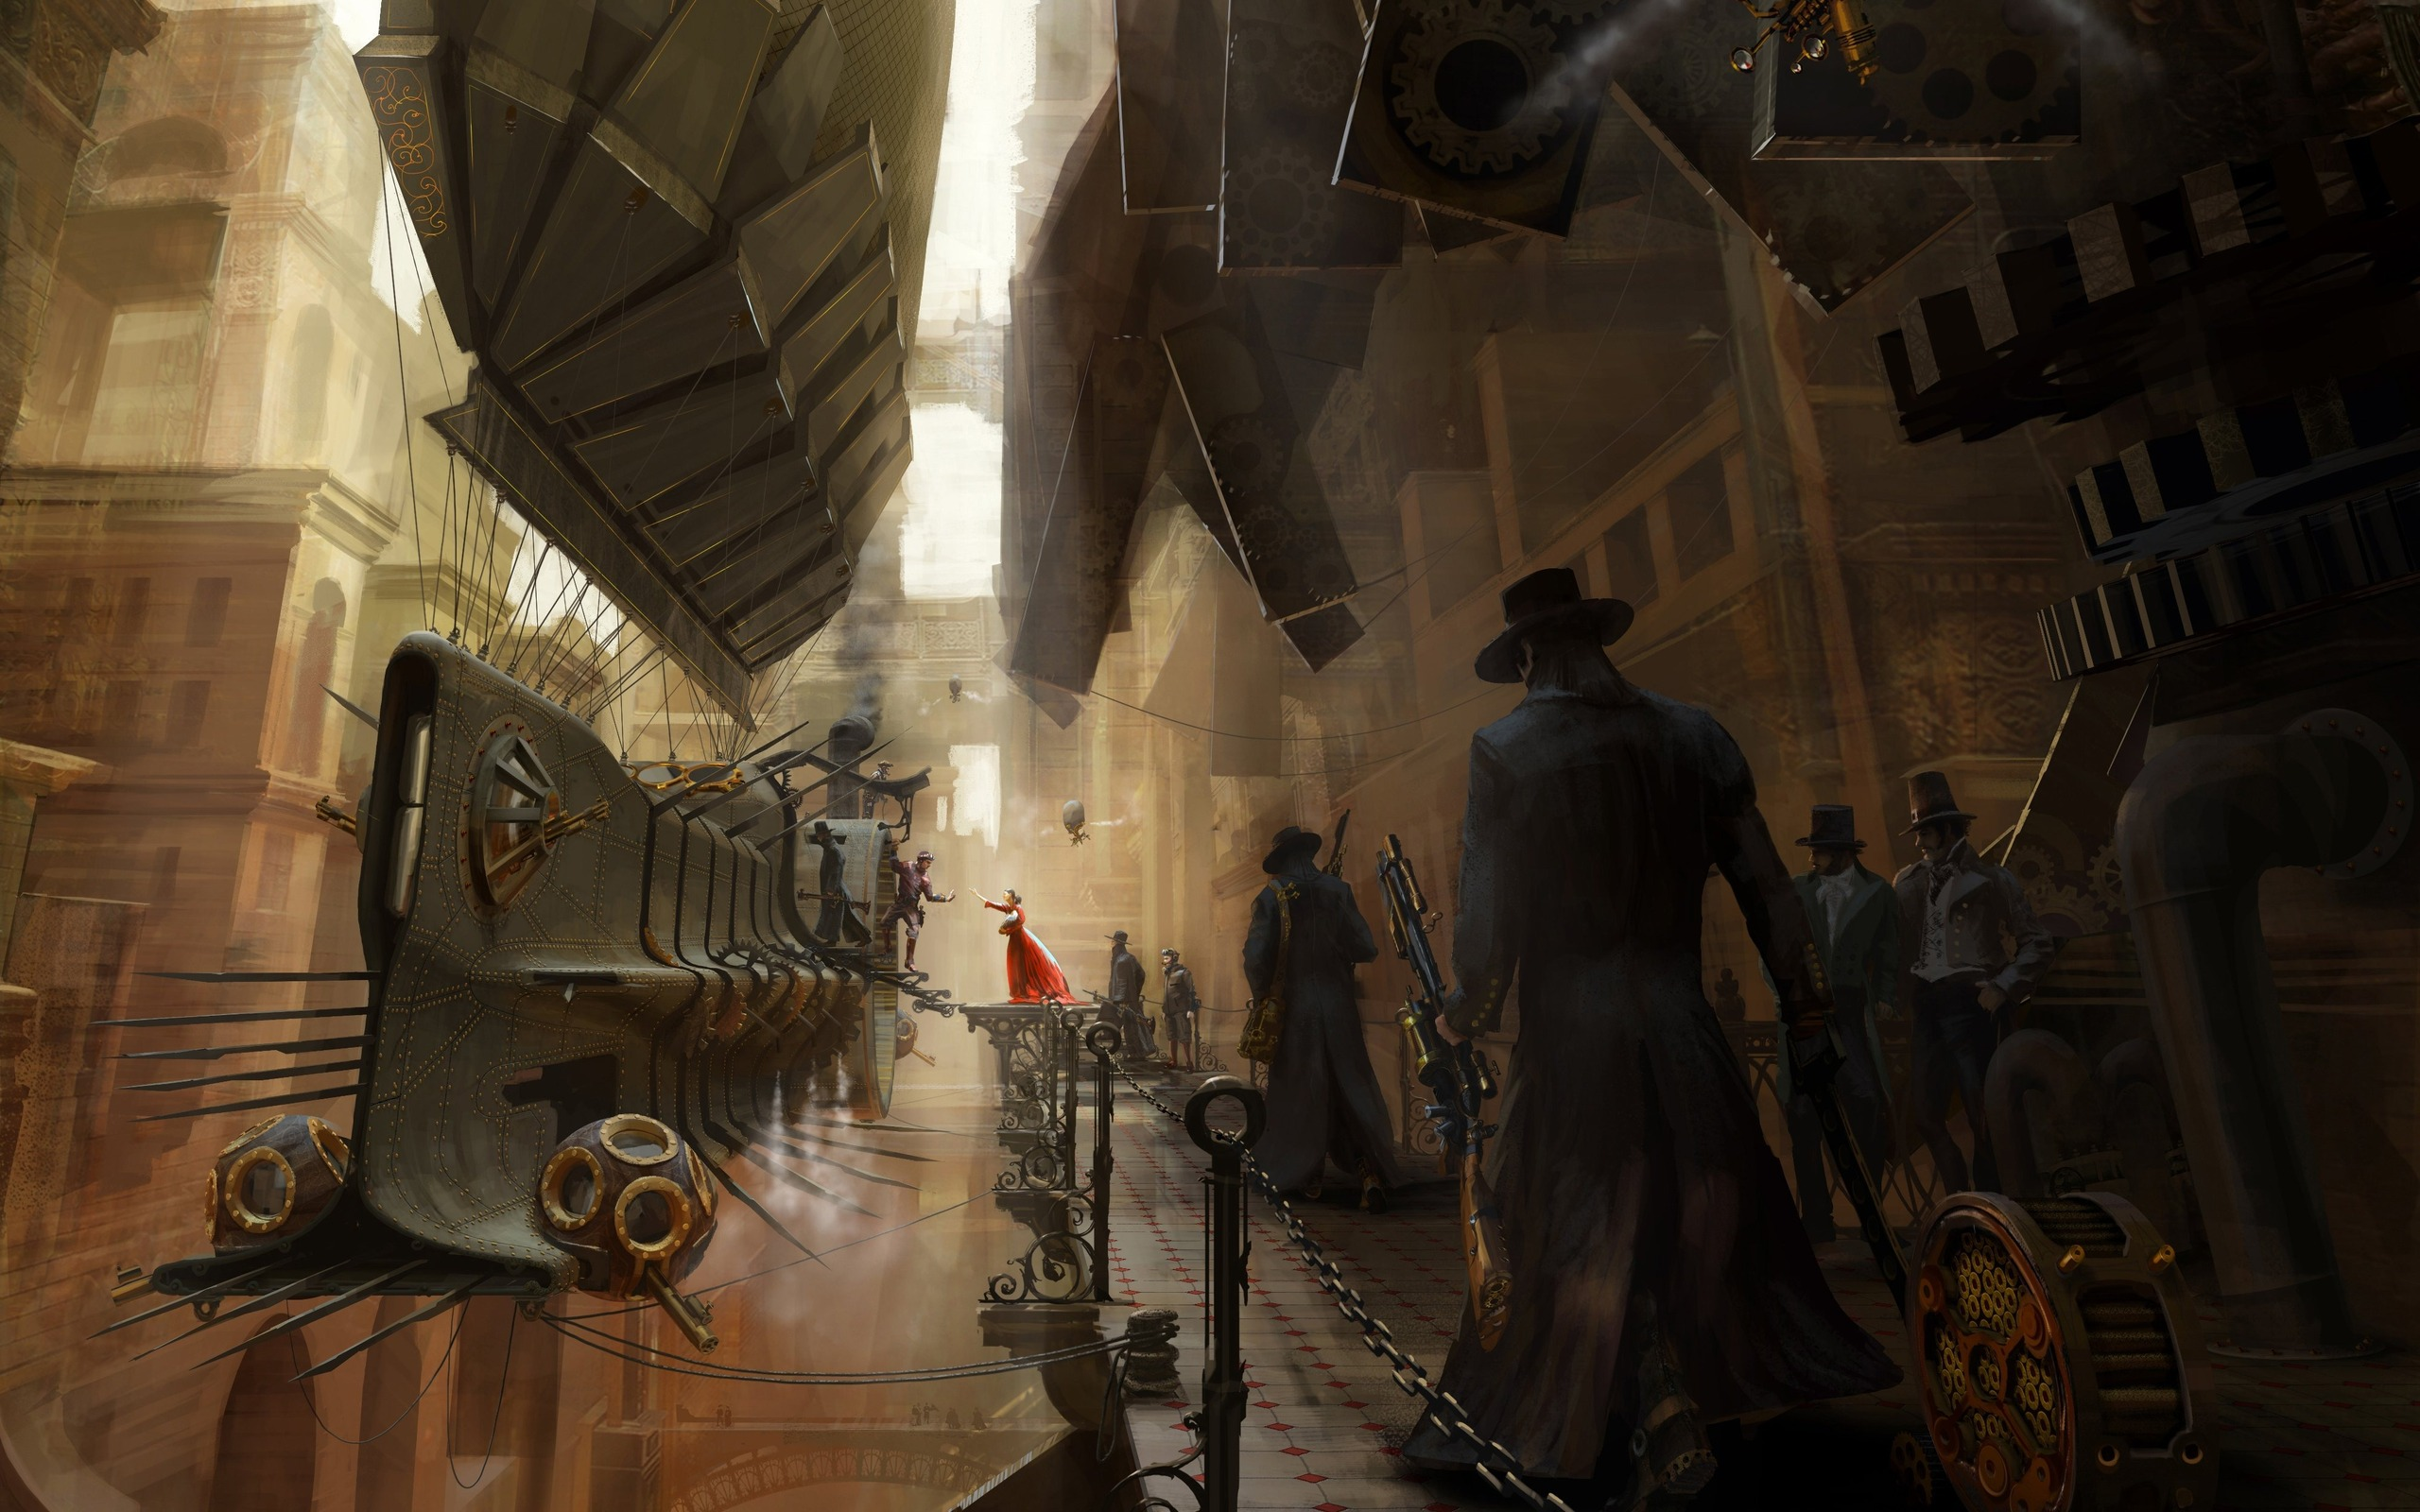 Steampunk Wallpaper Widescreen Images amp Pictures   Becuo 2560x1600